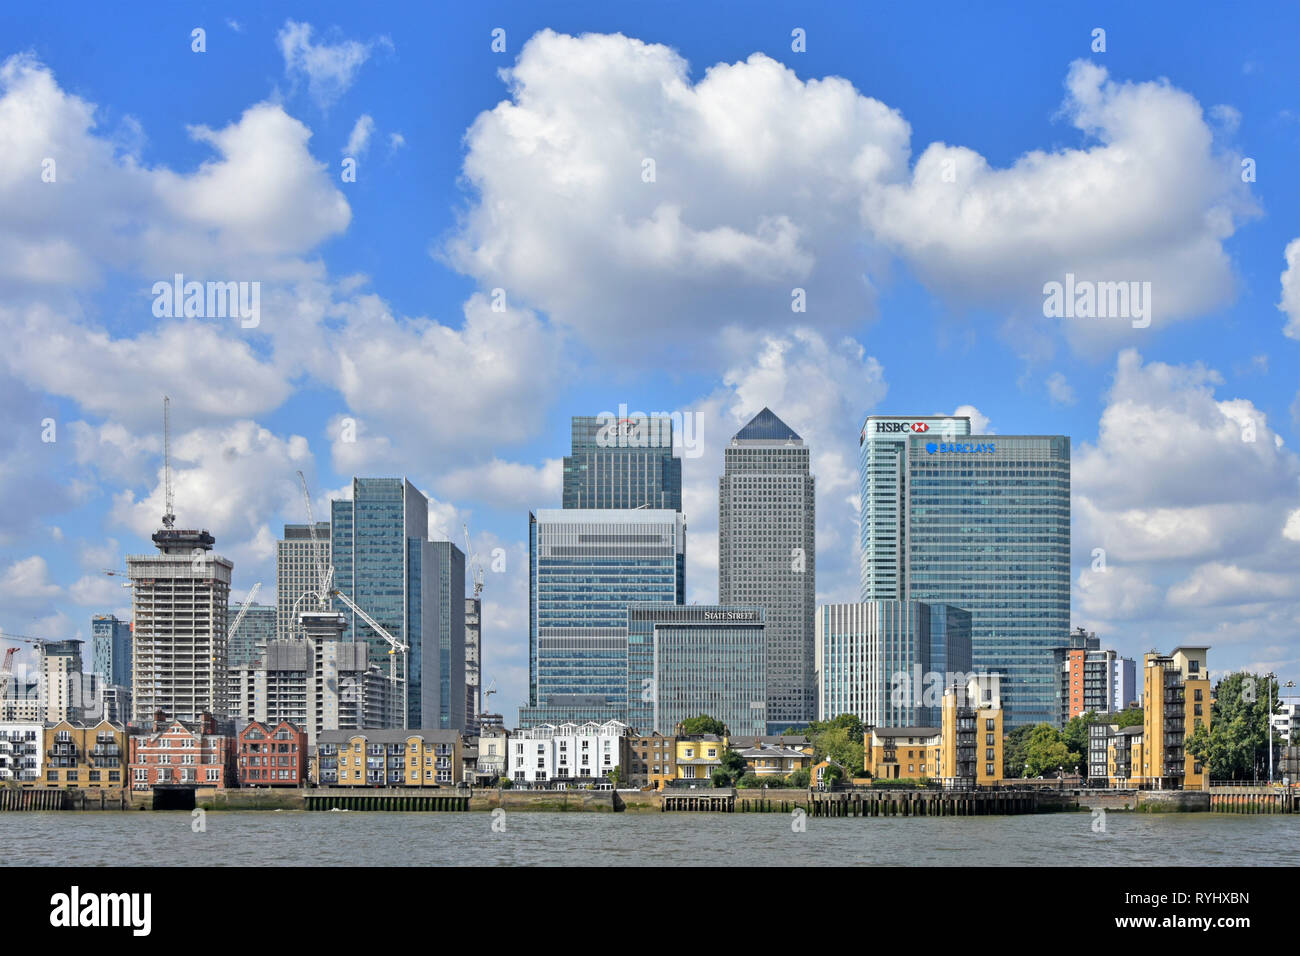 Building site construction cranes continue to expand Canary Wharf London Docklands cityscape skyline on the Isle of Dogs Newham East London England UK - Stock Image